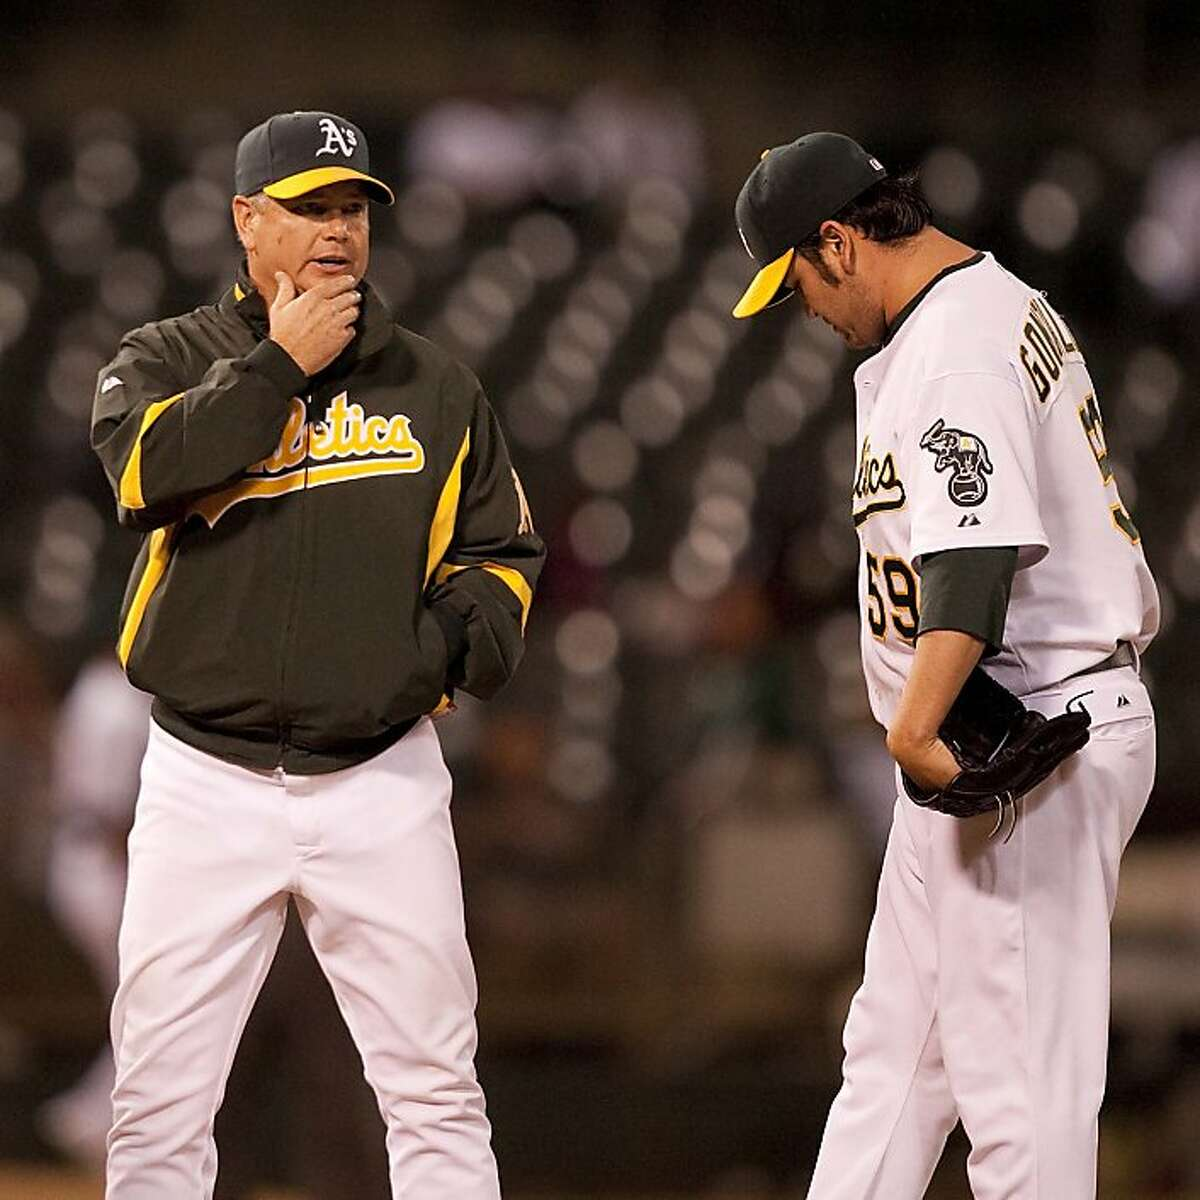 Pitching Coach Curt Young of the Oakland Athletics converses with pitcher Edgar Gonzalez (59) during the fourth inning against the visiting Texas Rangers at Oakland-Alameda County Coliseum in Oakland, Calif. on Monday, Sept. 21, 2009. Ran on: 09-22-2009 As pitcher Edgar Gonzalez (with pitching coach Curt Young) gave up six runs on nine hits over 31-3 innings. Ran on: 09-22-2009 As pitcher Edgar Gonzalez (with pitching coach Curt Young) gave up six runs on nine hits over 31-3 innings. Ran on: 08-24-2010 Curt Young